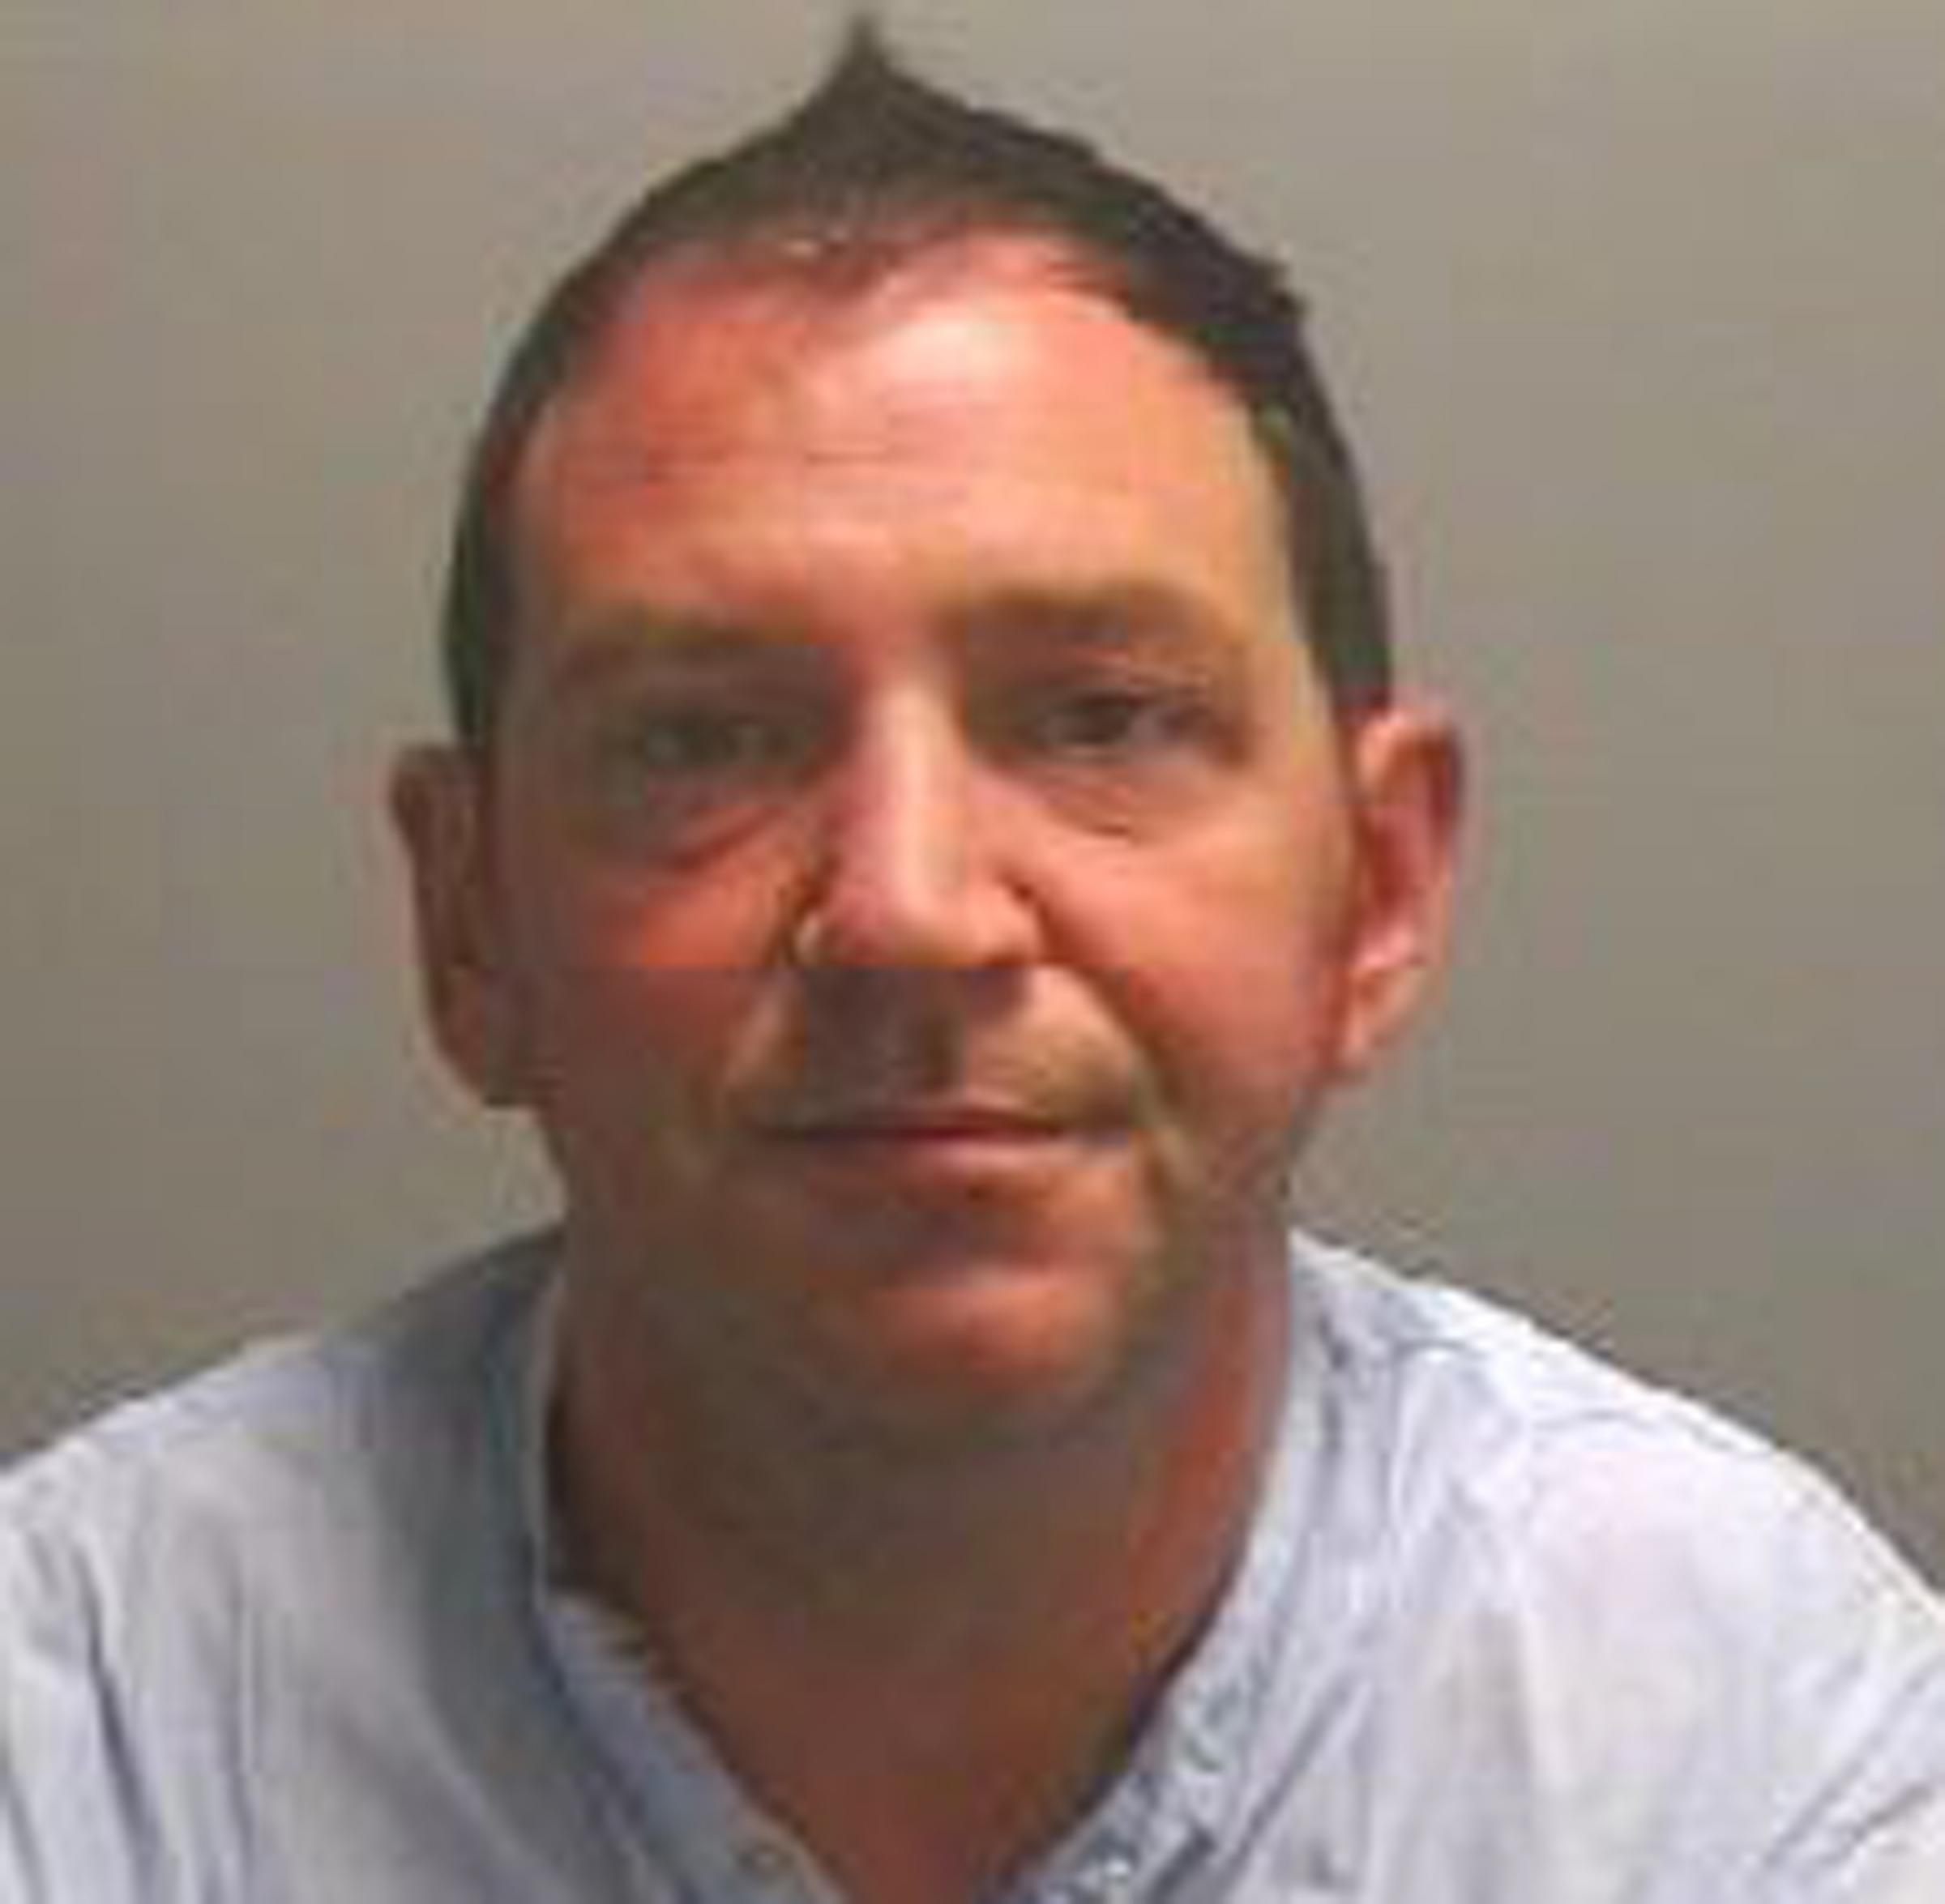 JAILED: Peter Furness jailed for bleach attack